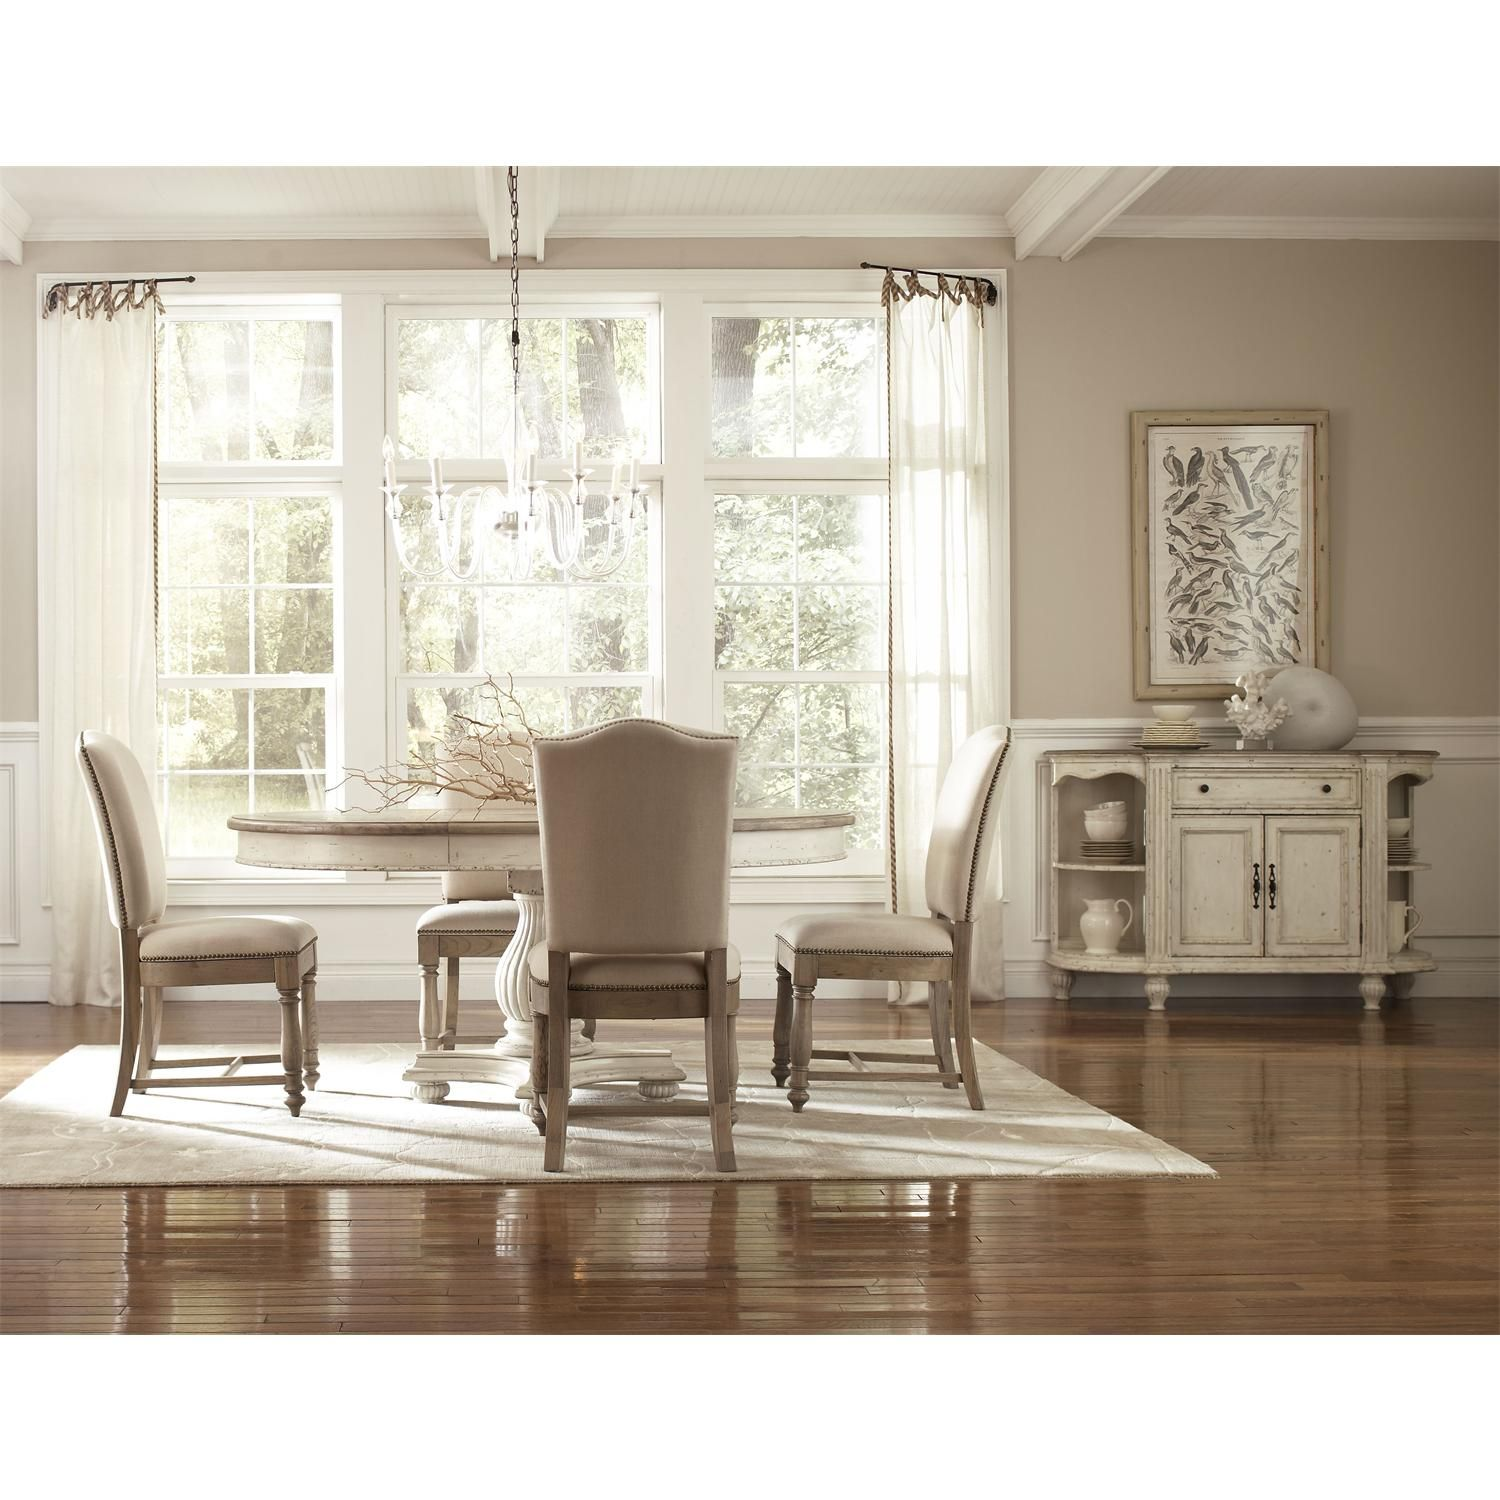 Coventry Two Tone Round Dining Table Top | Round dining ...